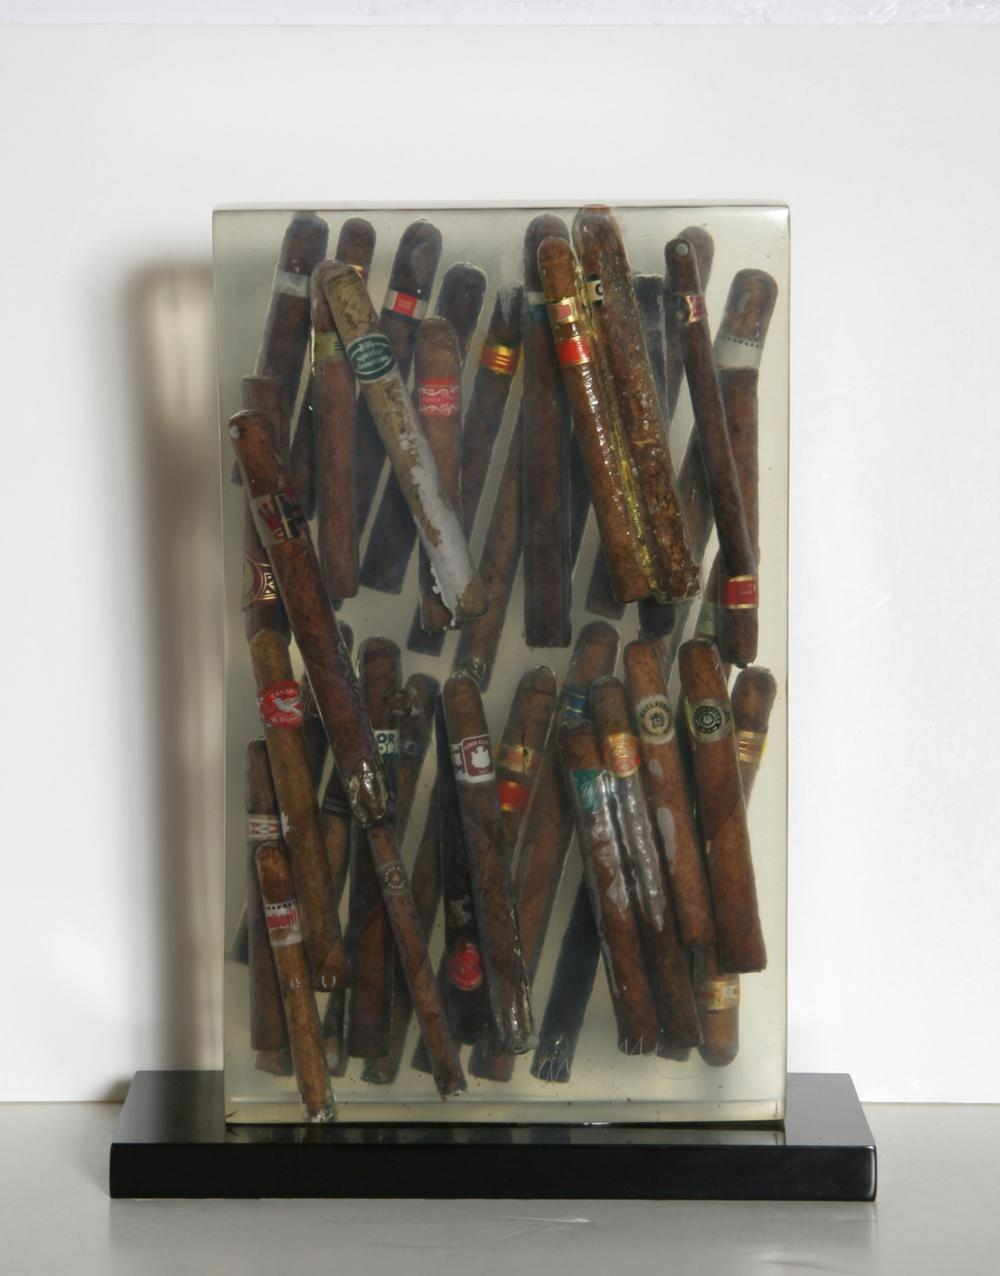 Arman, Waiting to Exhale, Accumulation of Cigars Sculpture